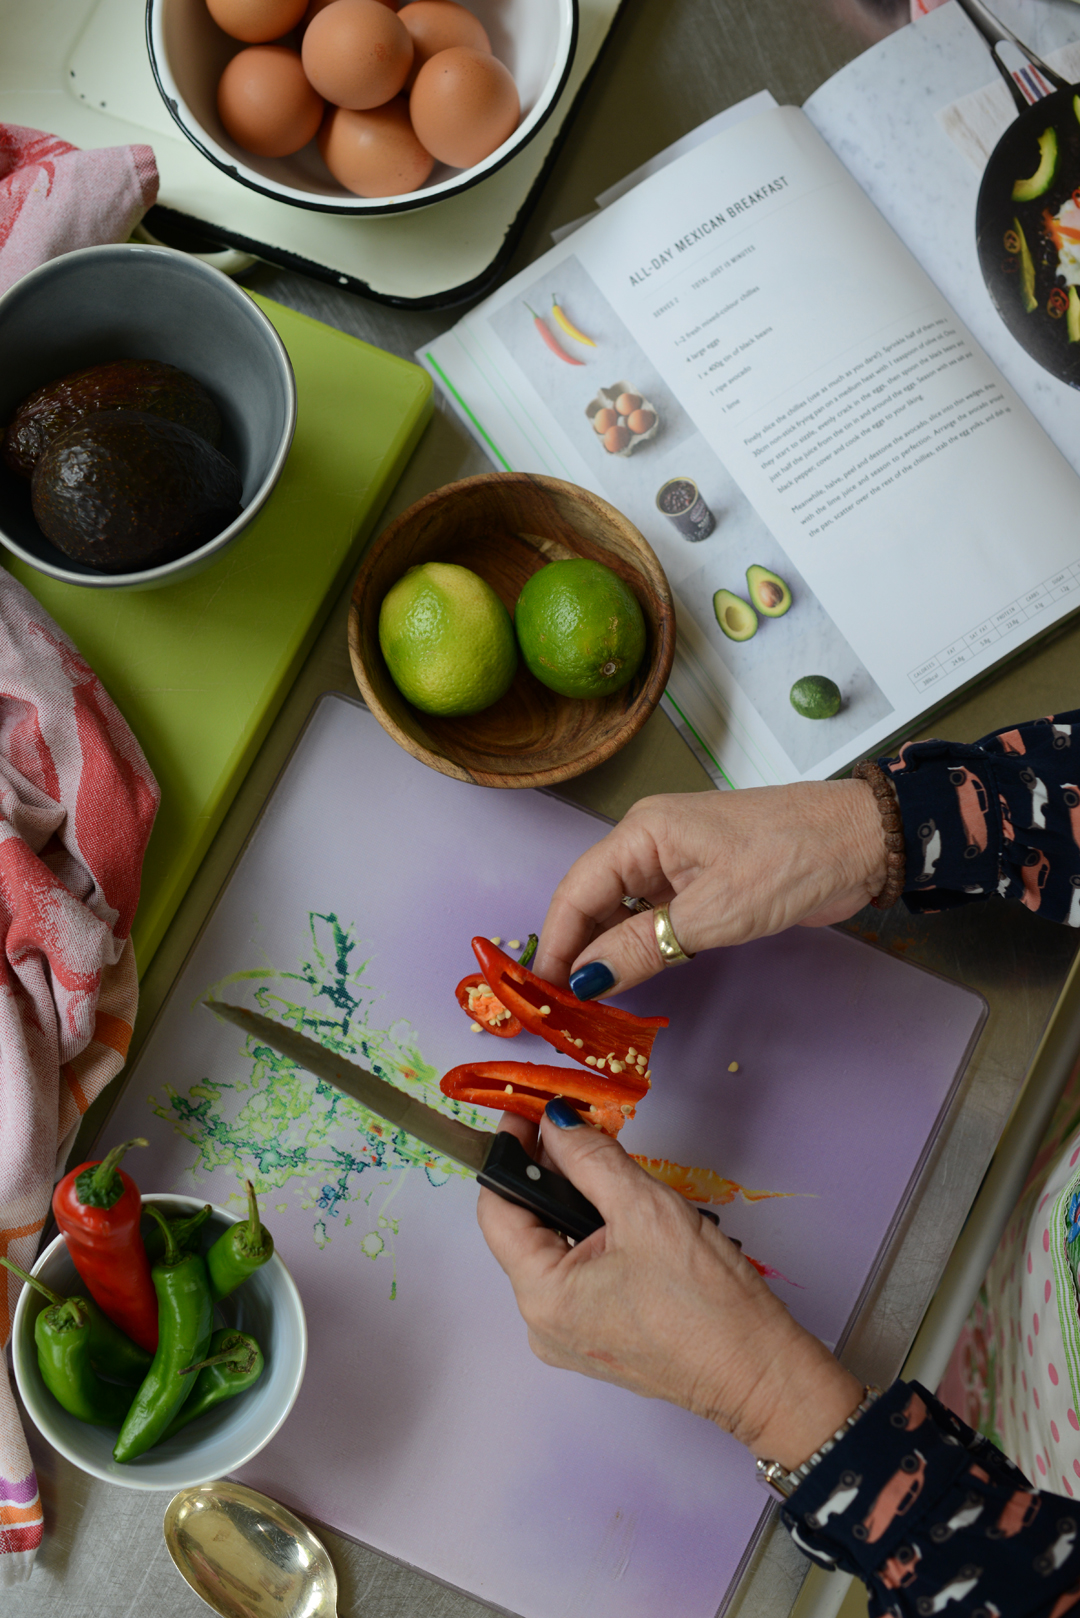 INGREDIENTS FOR a HEALTHY BRUNCH. PHOTOGRAPHY BY SARA DELANEY, NOTES FROM A STYLIST.